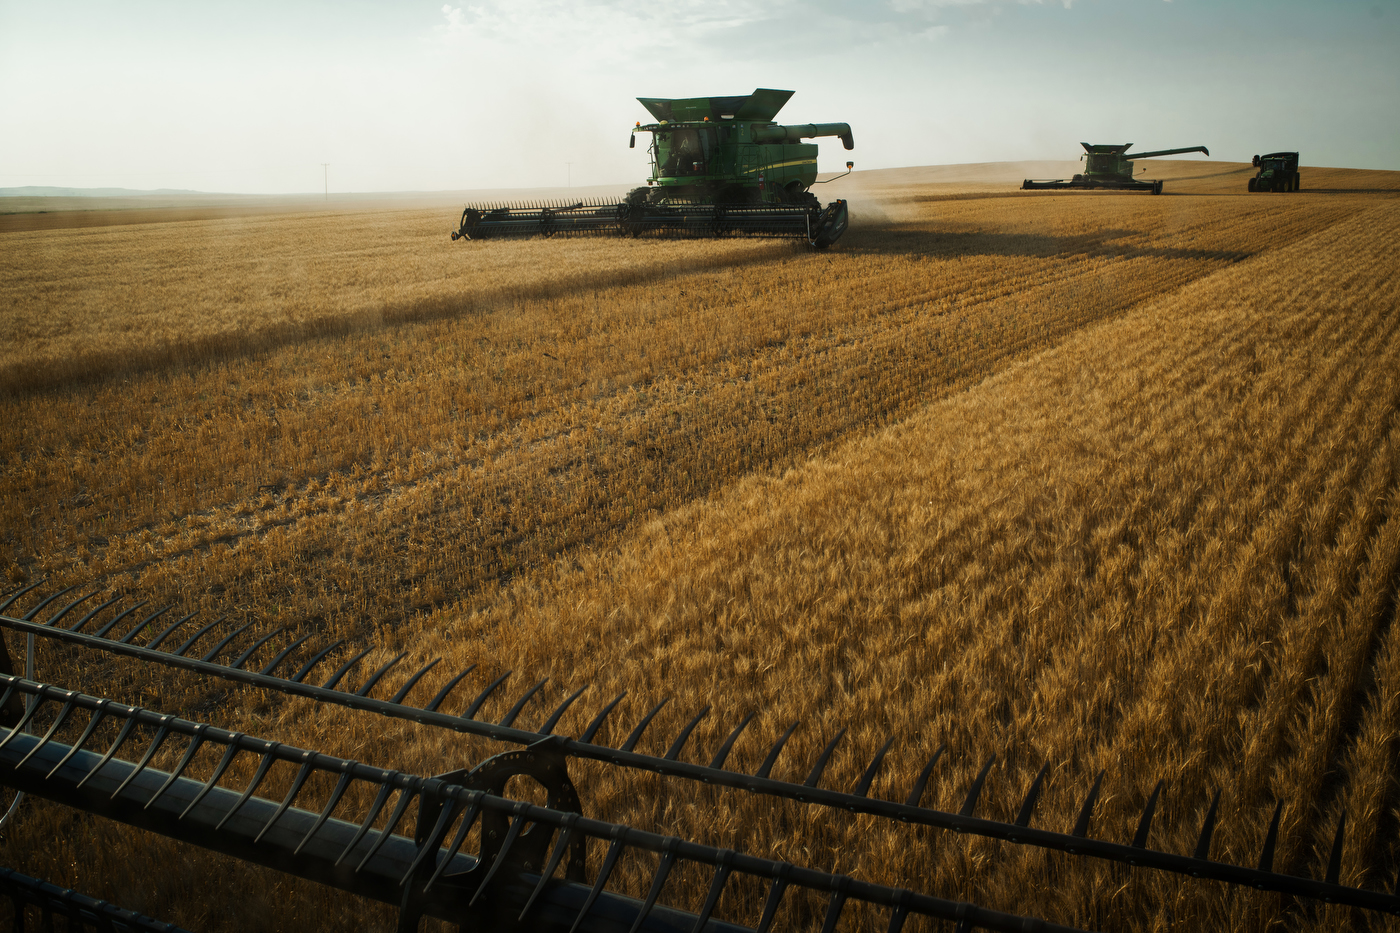 """45°29'05.8""""N 102°40'44.5""""W. 108 miles from the nearest McDonald's.  Harvesters from a major area farm work a wheat field outside of Bison, SD on August 1, 2017. Due to the drought, many area farmers have taken a complete loss on their crops and winter feed for cattle was at an extreme shortage."""